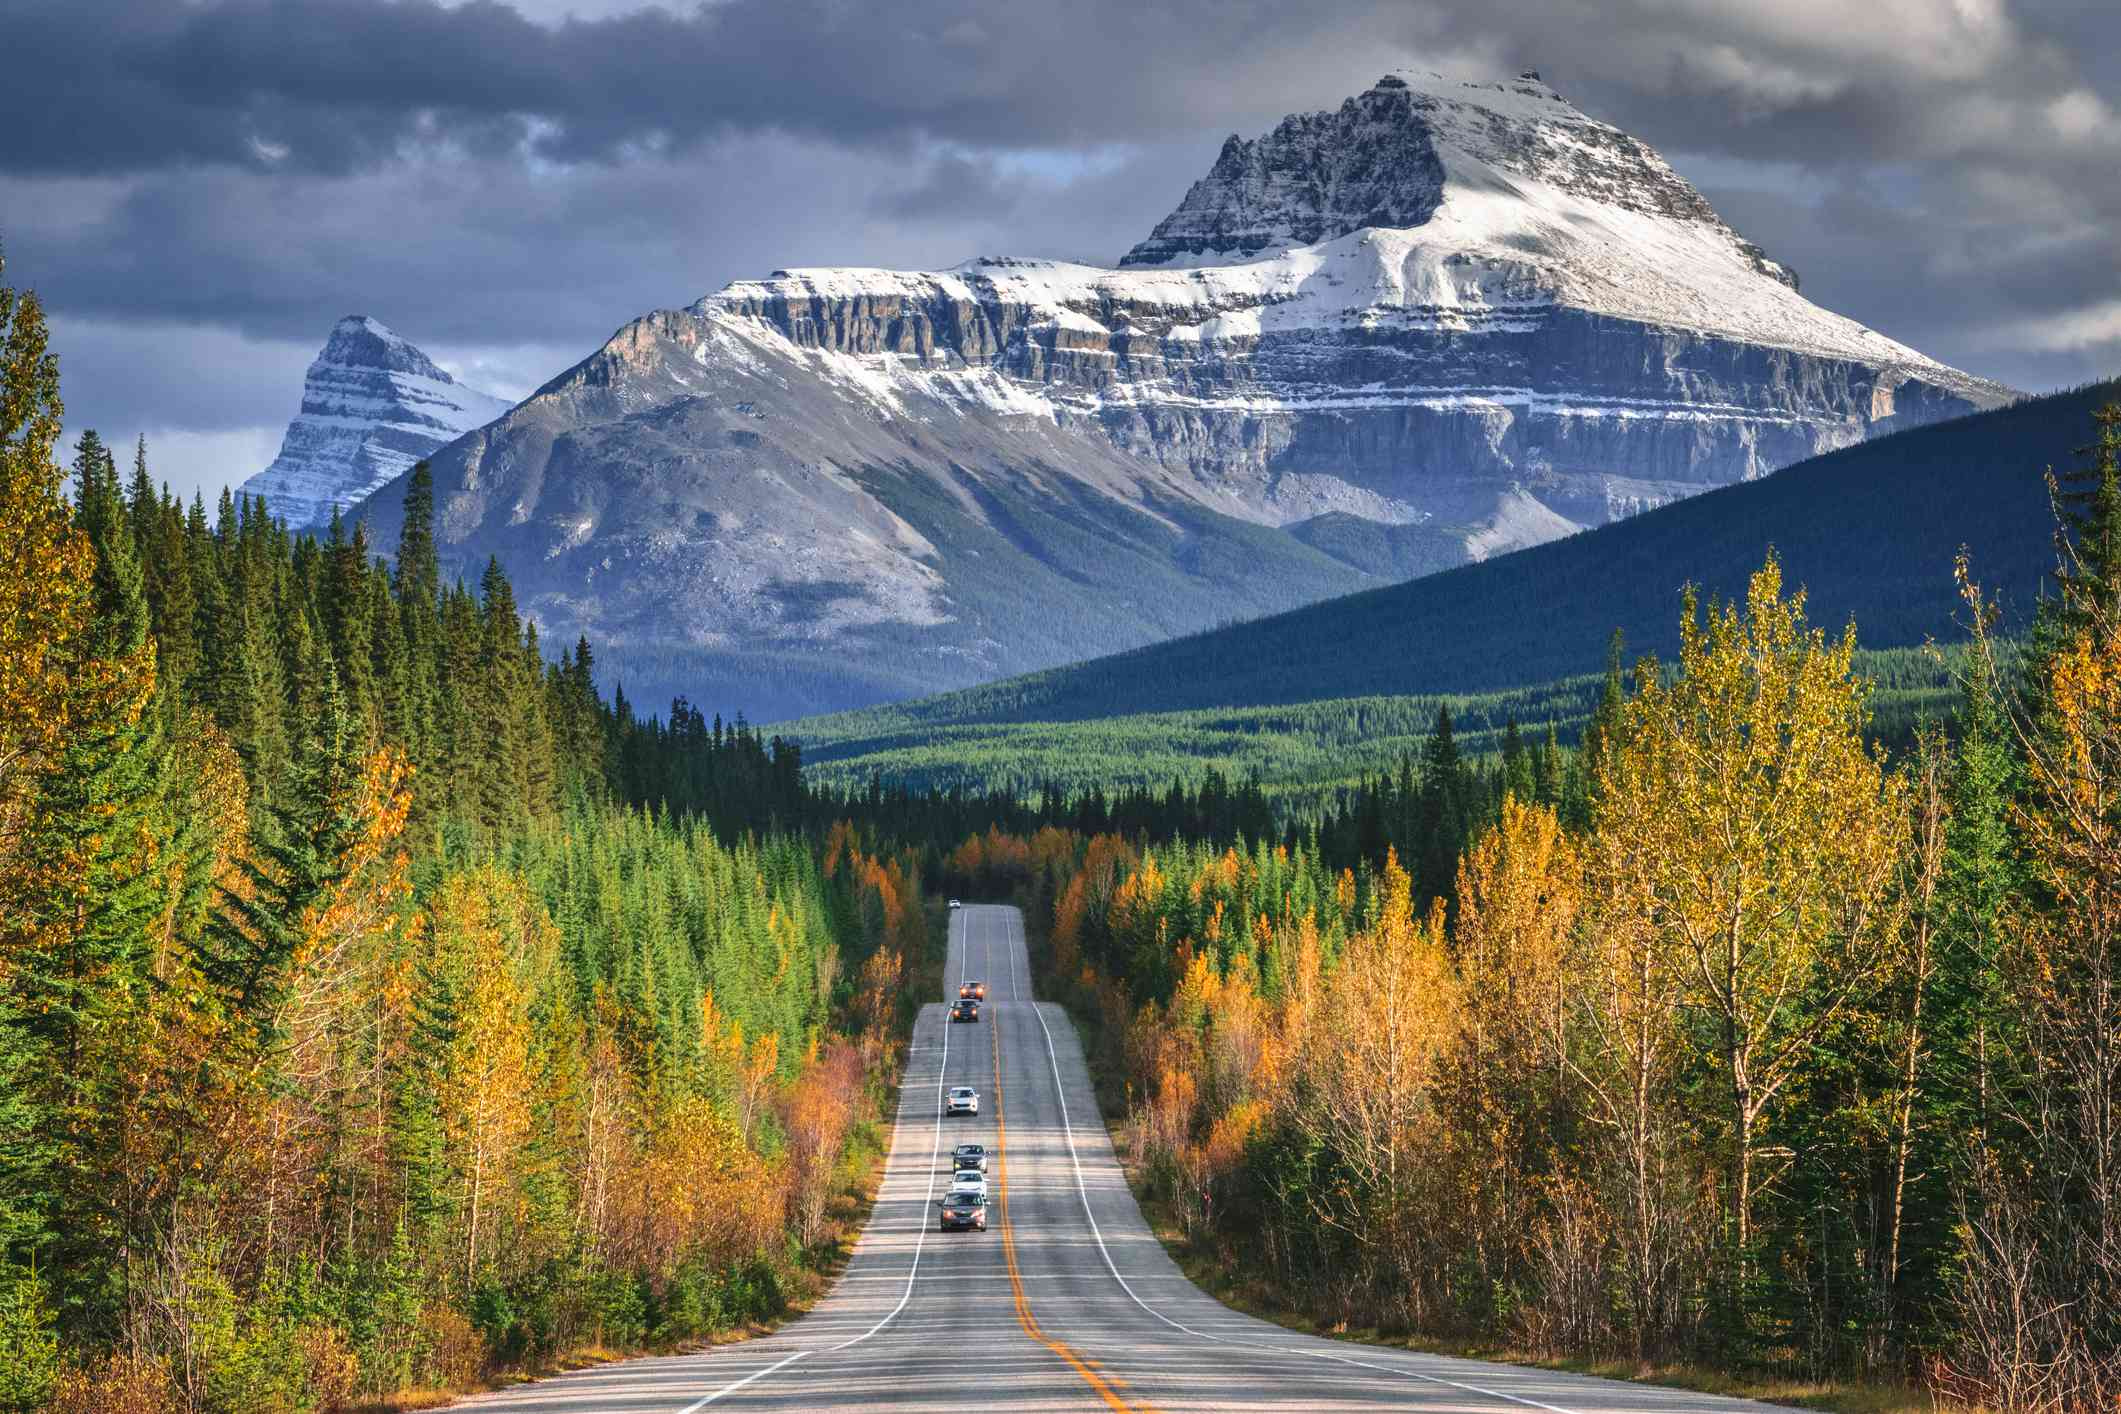 Autumn Drive In Canadian Rockies, Icefields Parkway, Alberta, Canada